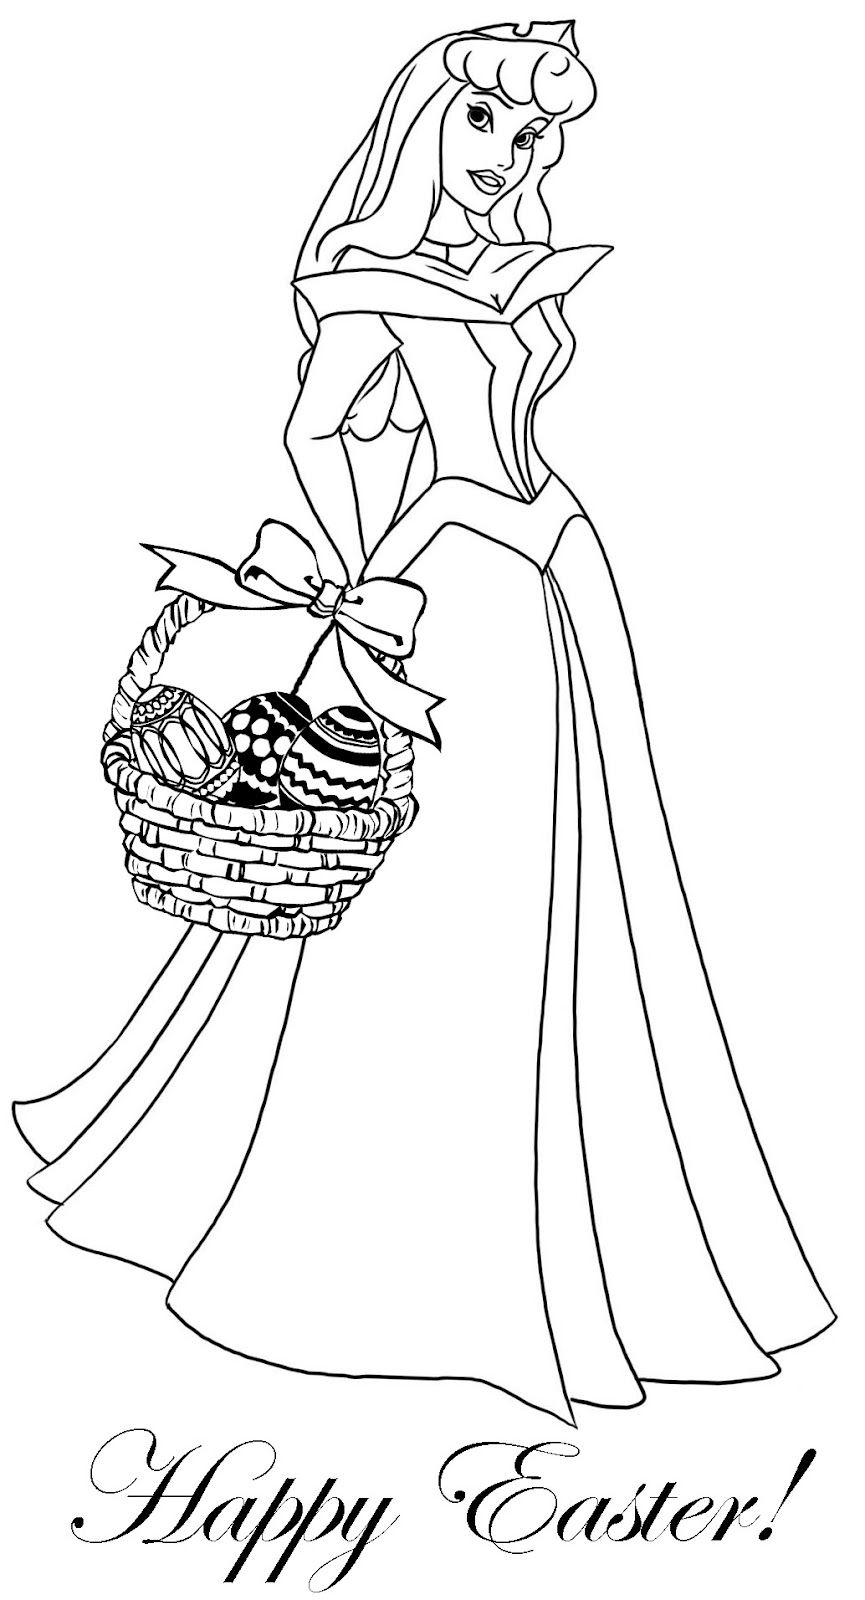 Coloring book disney princess - Princess Coloring Pages Easter Theme Coloring Page